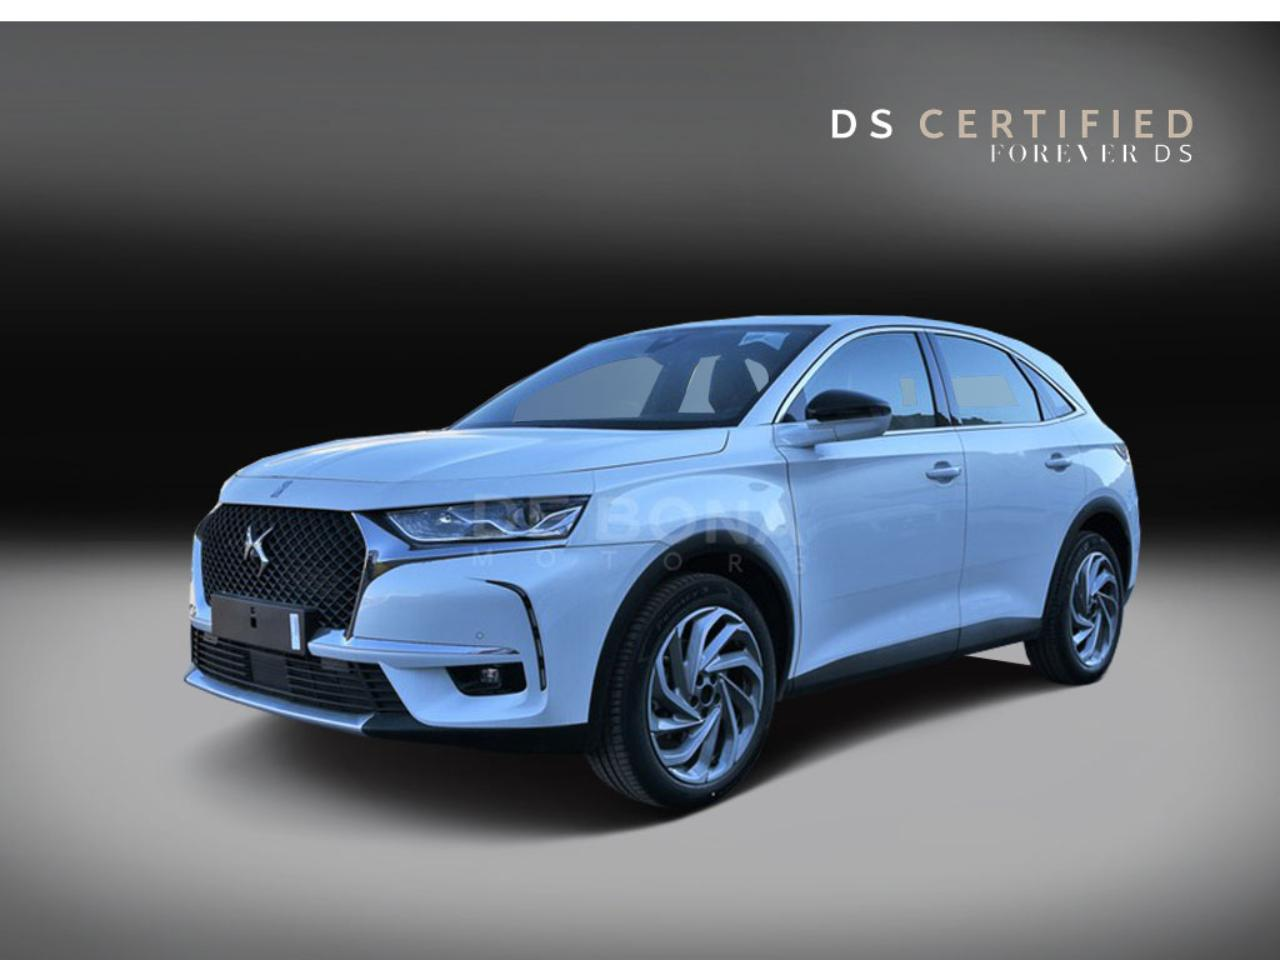 Ds DS 7 Crossback 2.0 bluehdi Business 180cv auto my19